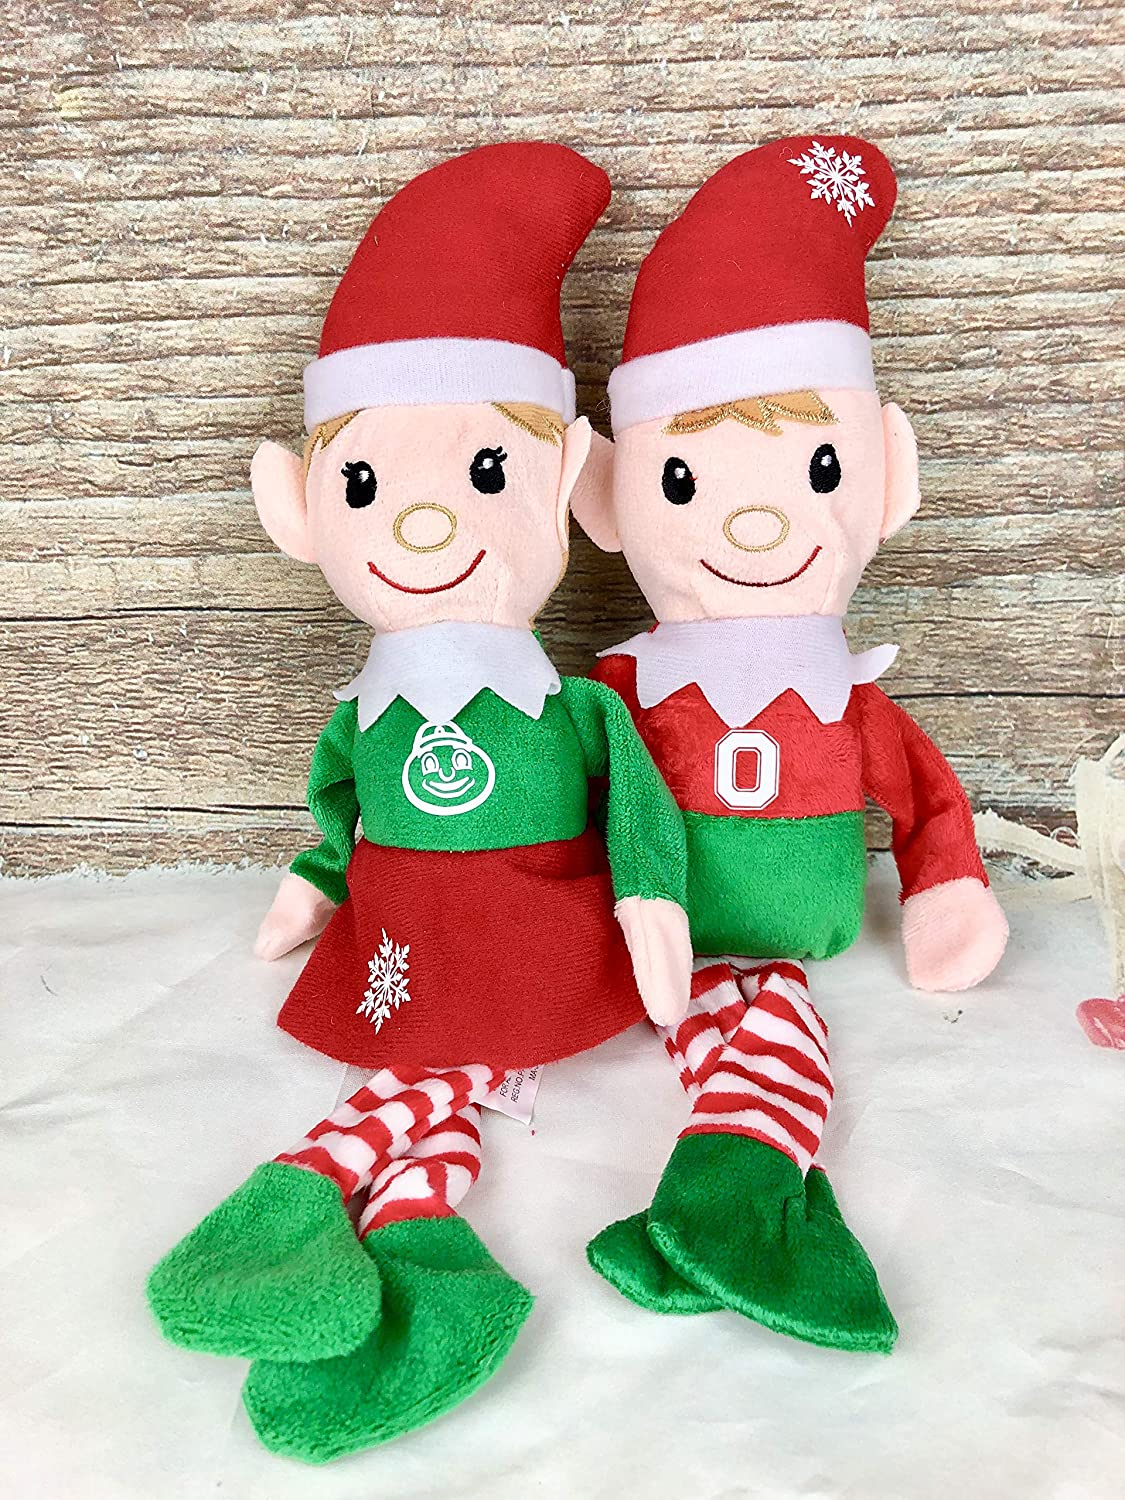 Ohio State Buckeyes, Elf, Santa's Helpers, Shelf Sitters Plush Dolls Santa' s Helpers